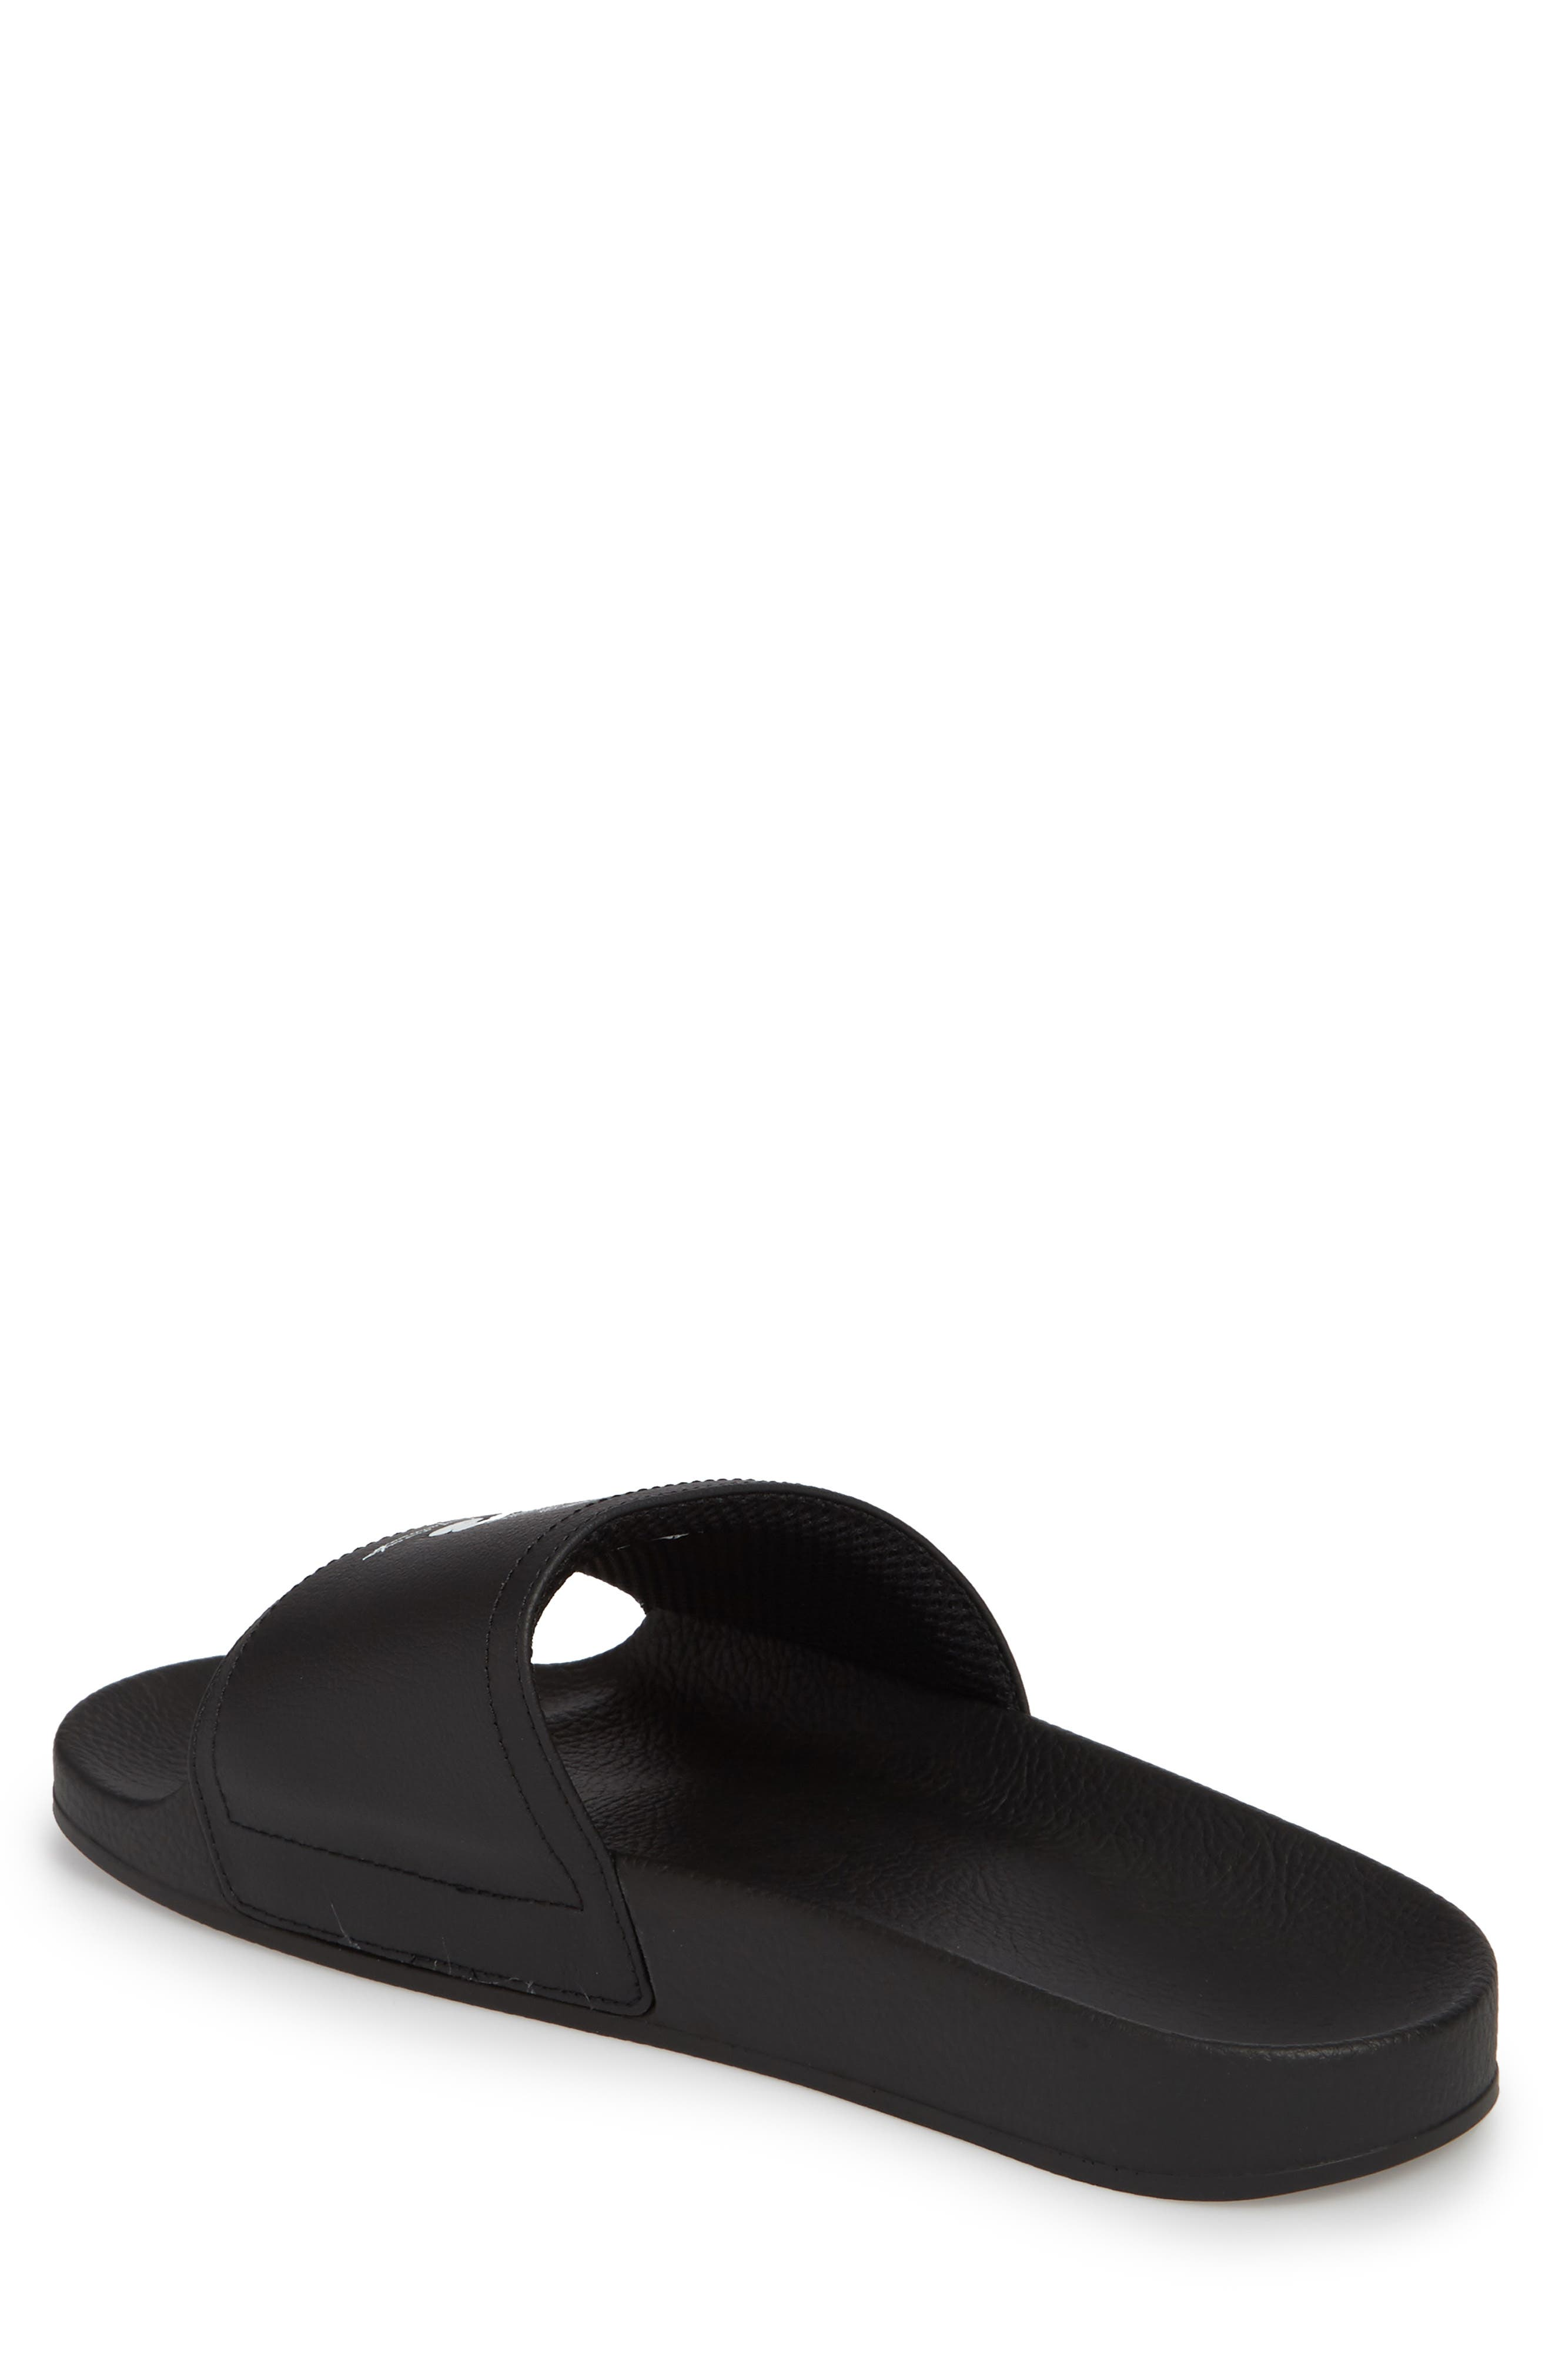 Y-3,                             Adilette Slide Sandal,                             Alternate thumbnail 2, color,                             001